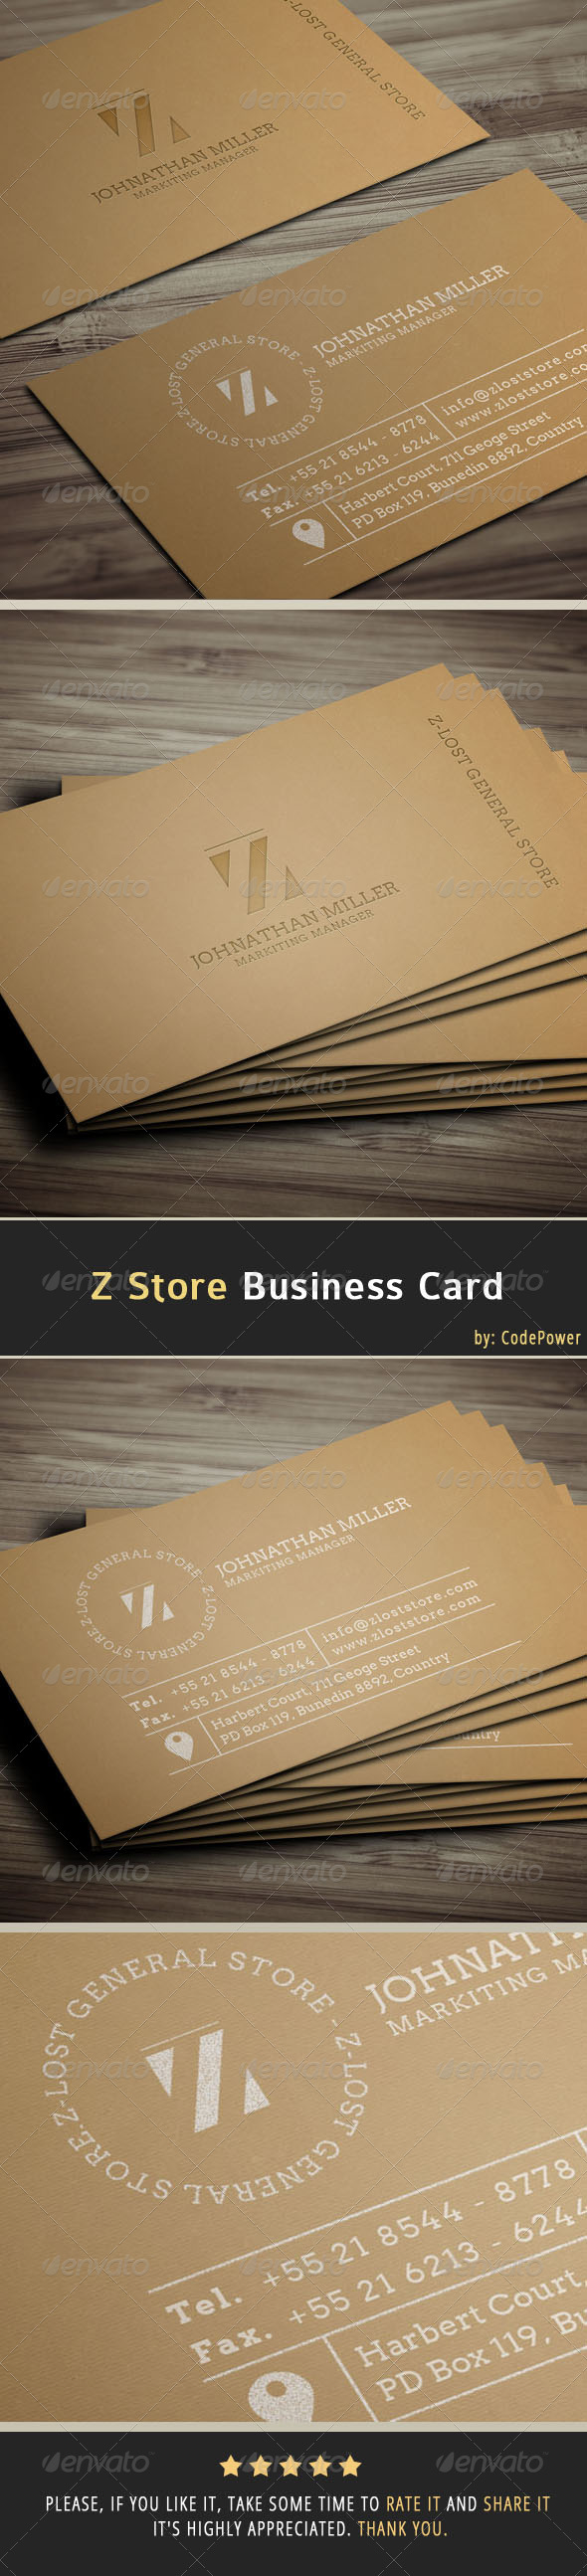 GraphicRiver Z Store Business Card 6921424